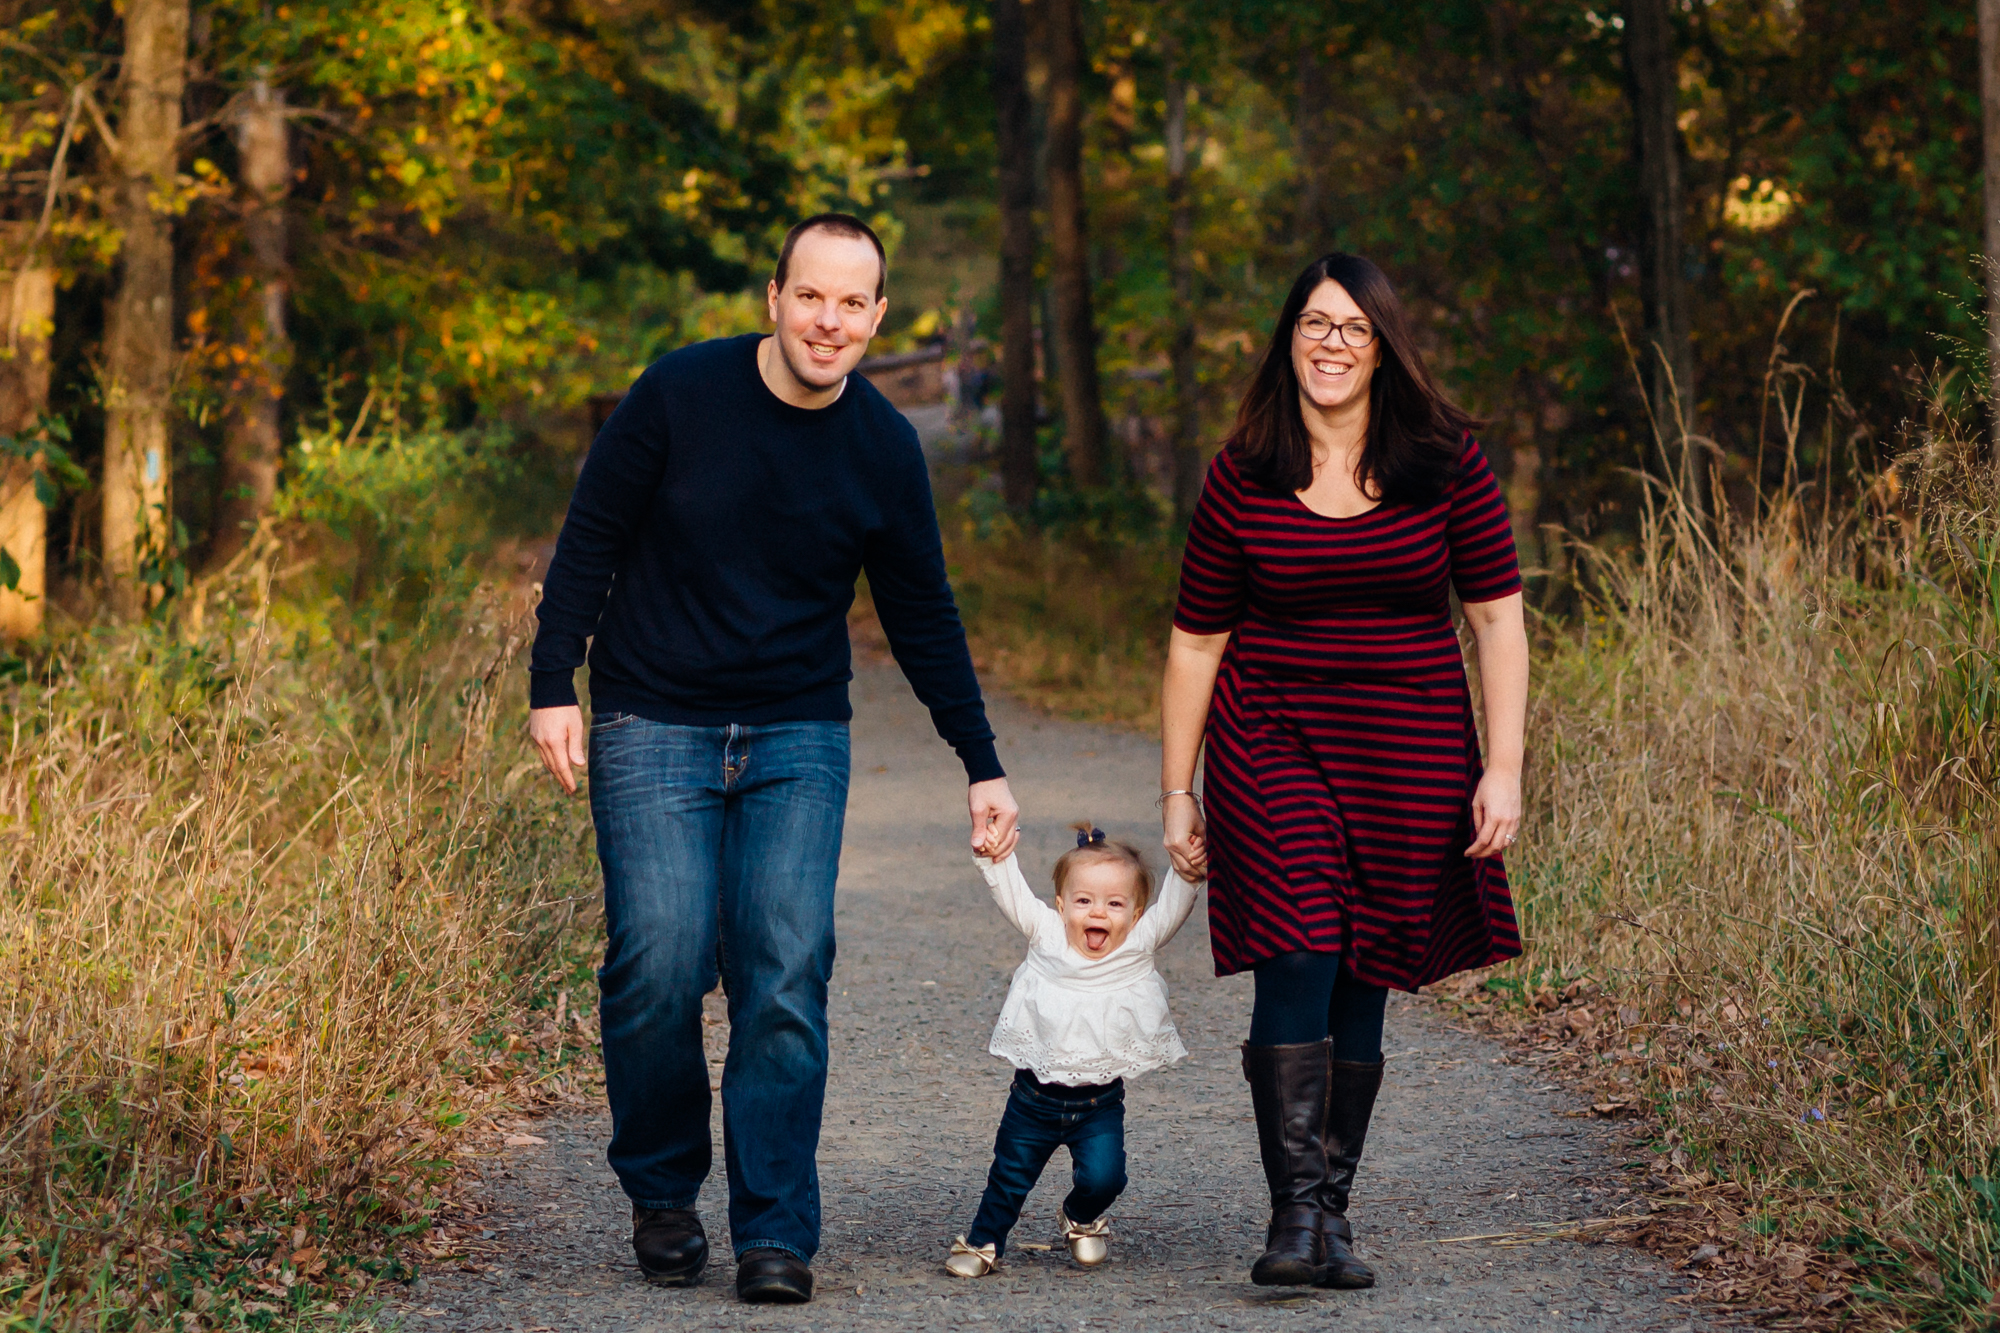 parents walking with 1 year old between them